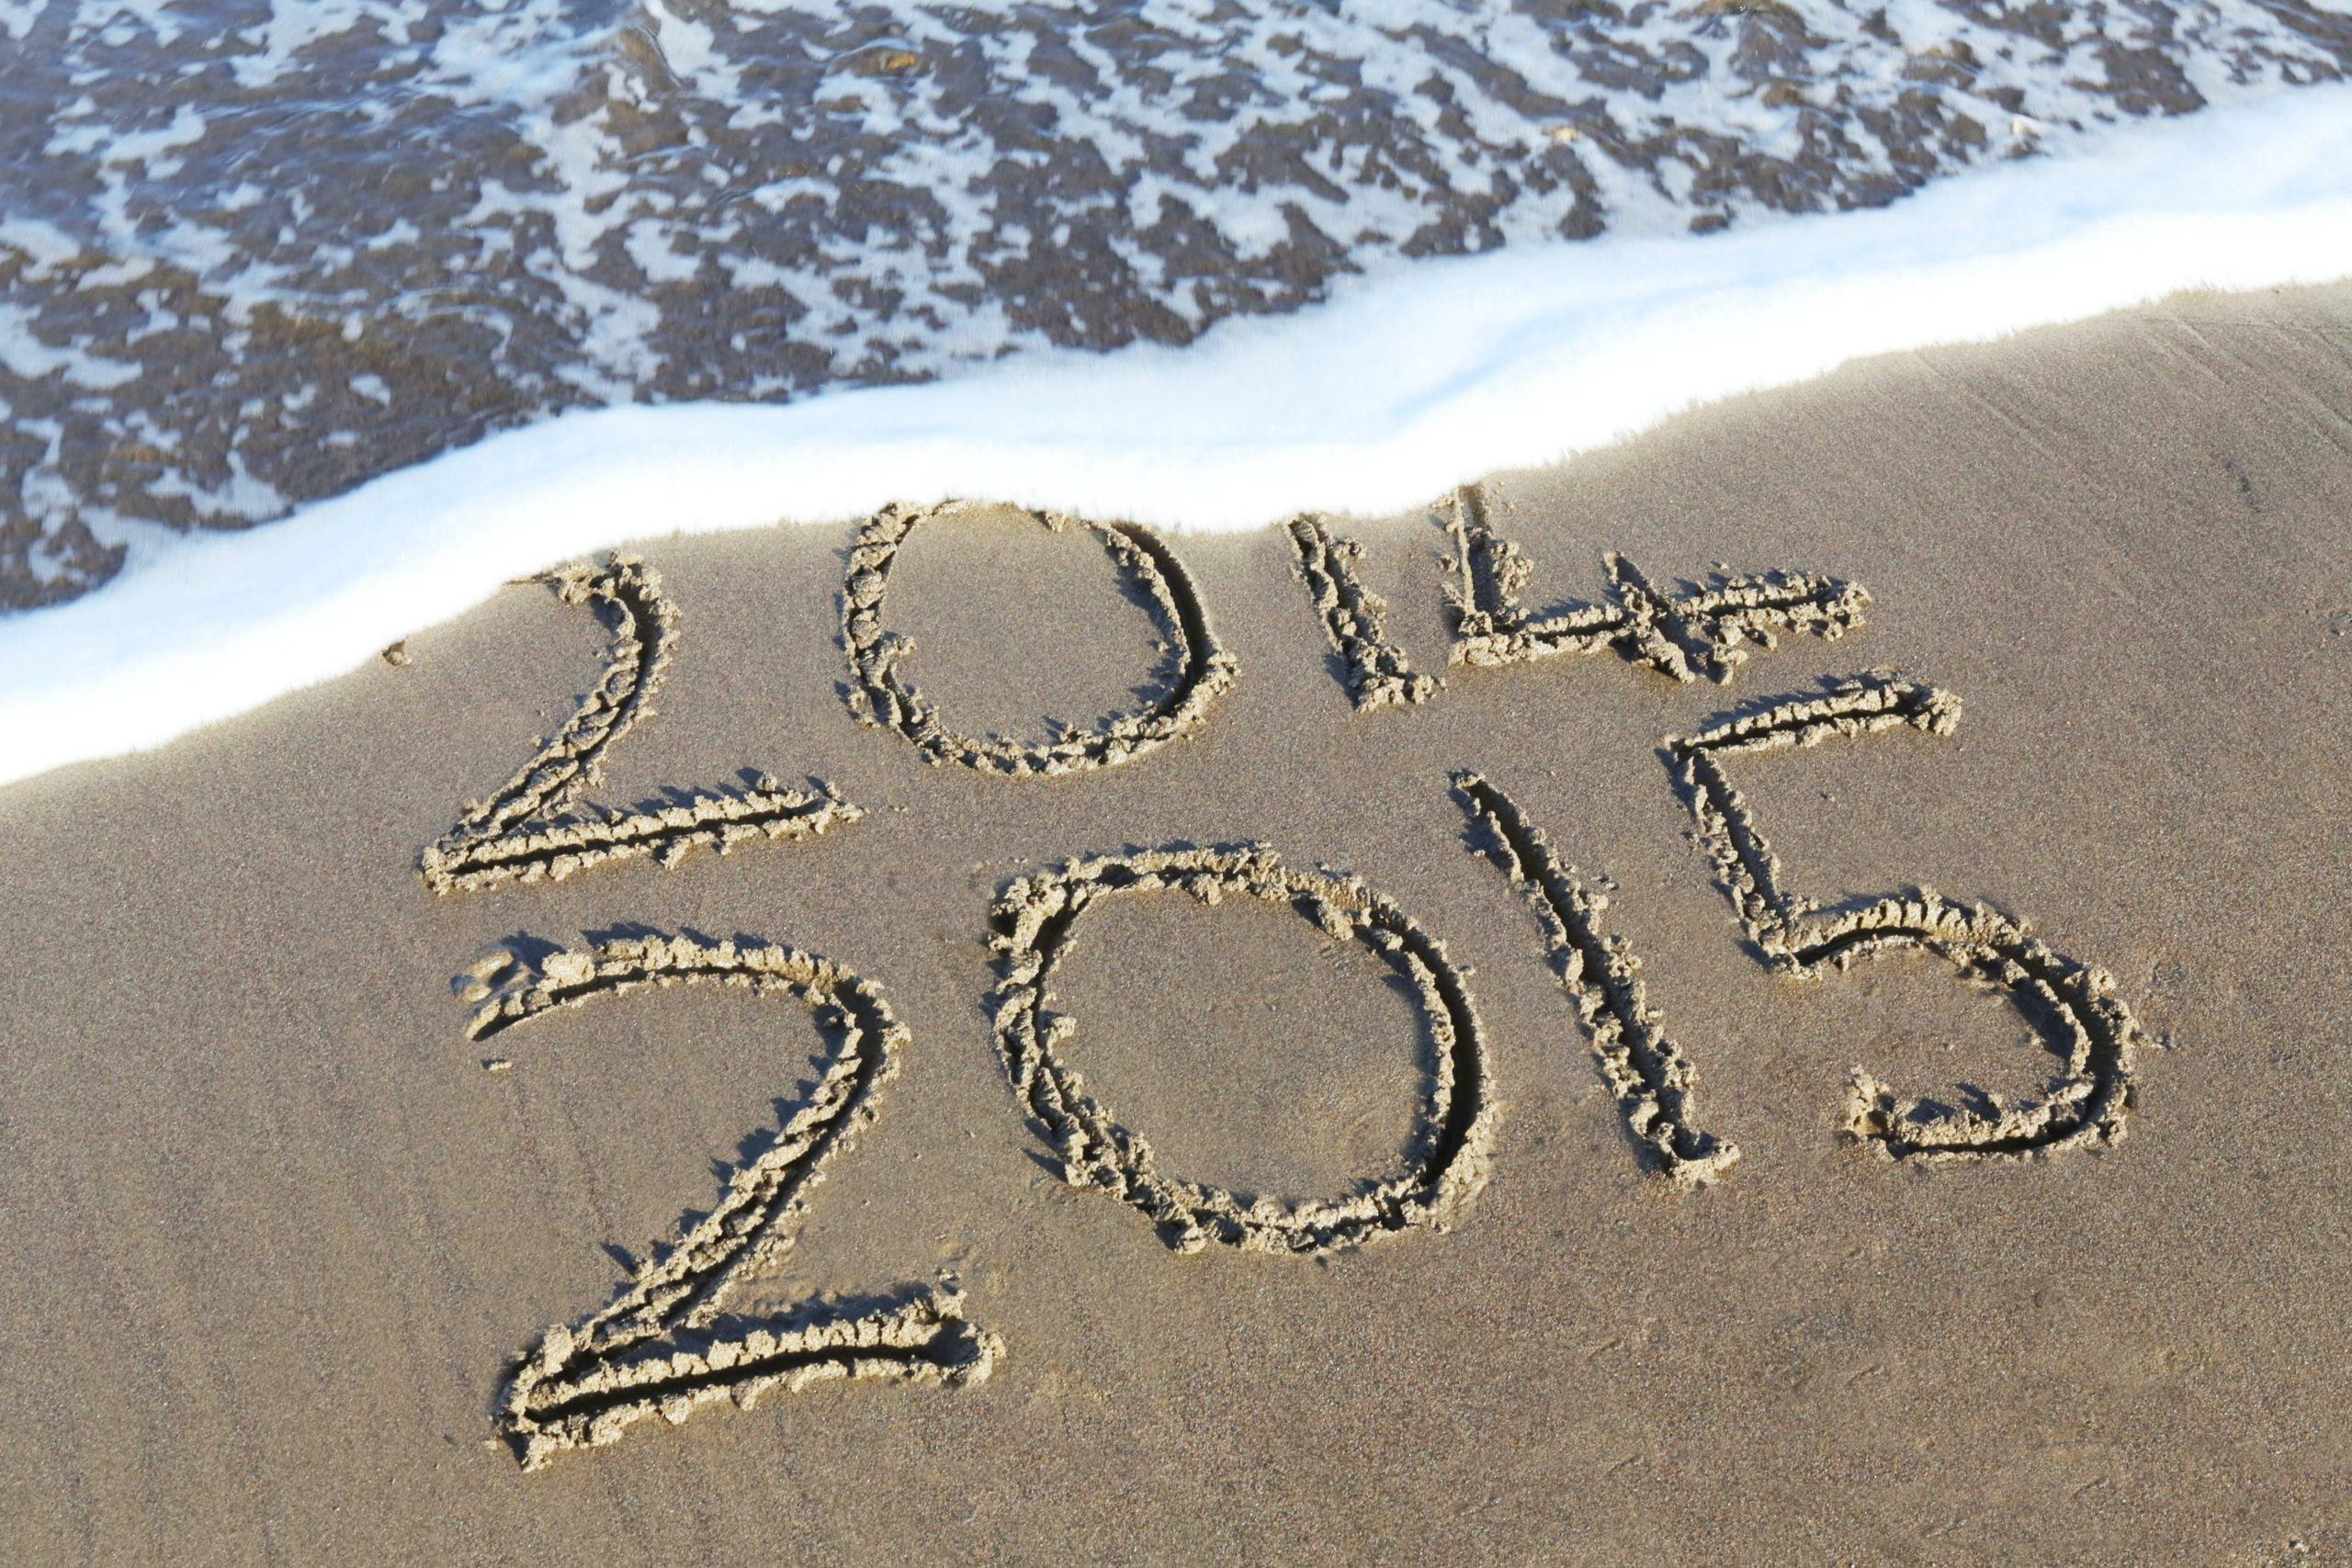 And now to 2015